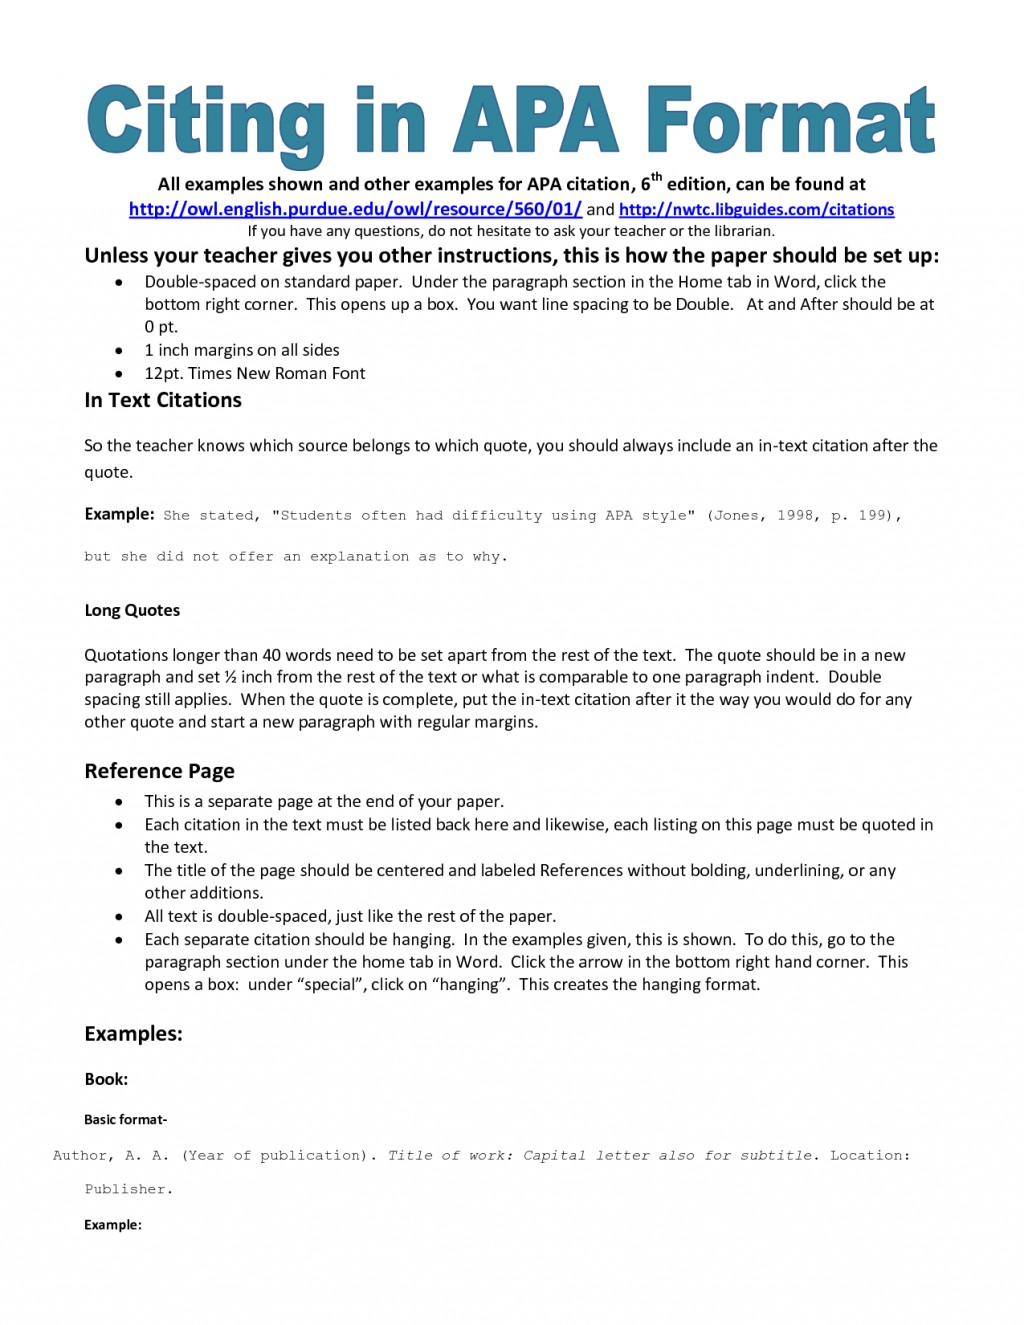 012 Apa Format Research Paper Stunning Examples Example 2012 2017 Citation Large